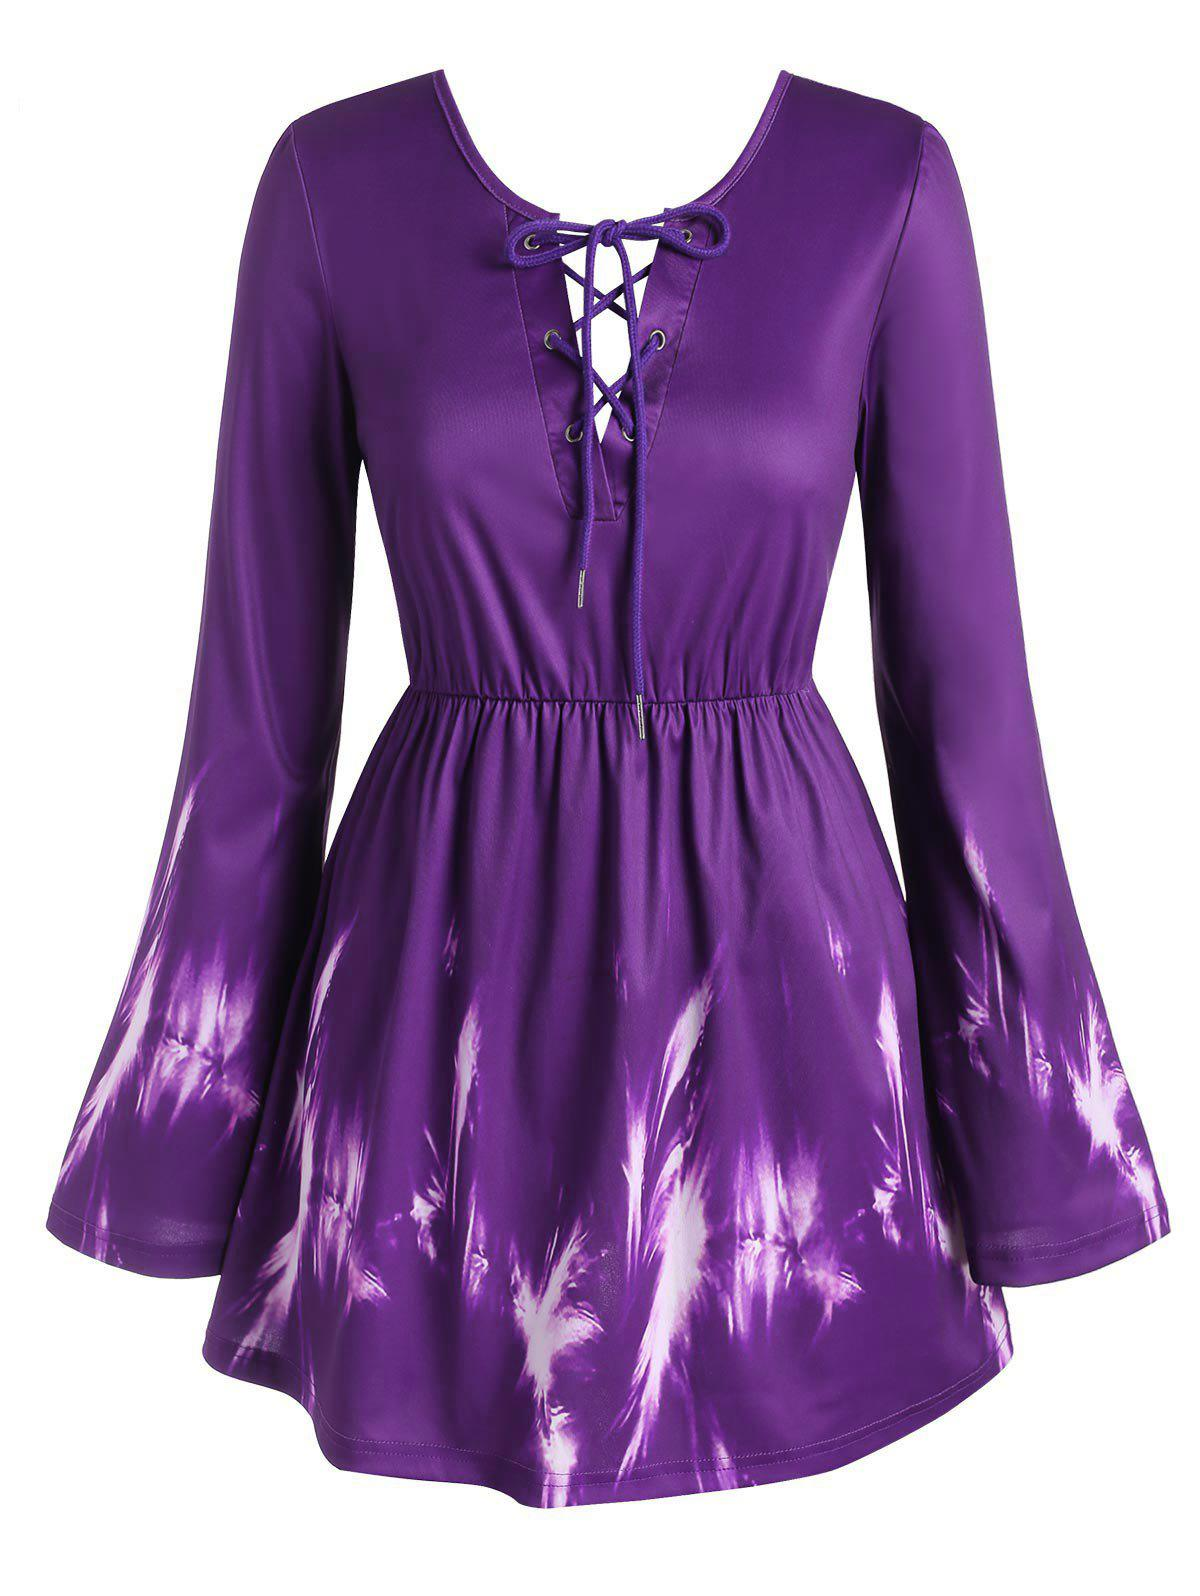 Plus Size Bell Sleeve Lace Up Bowknot Blouse - PURPLE 4X